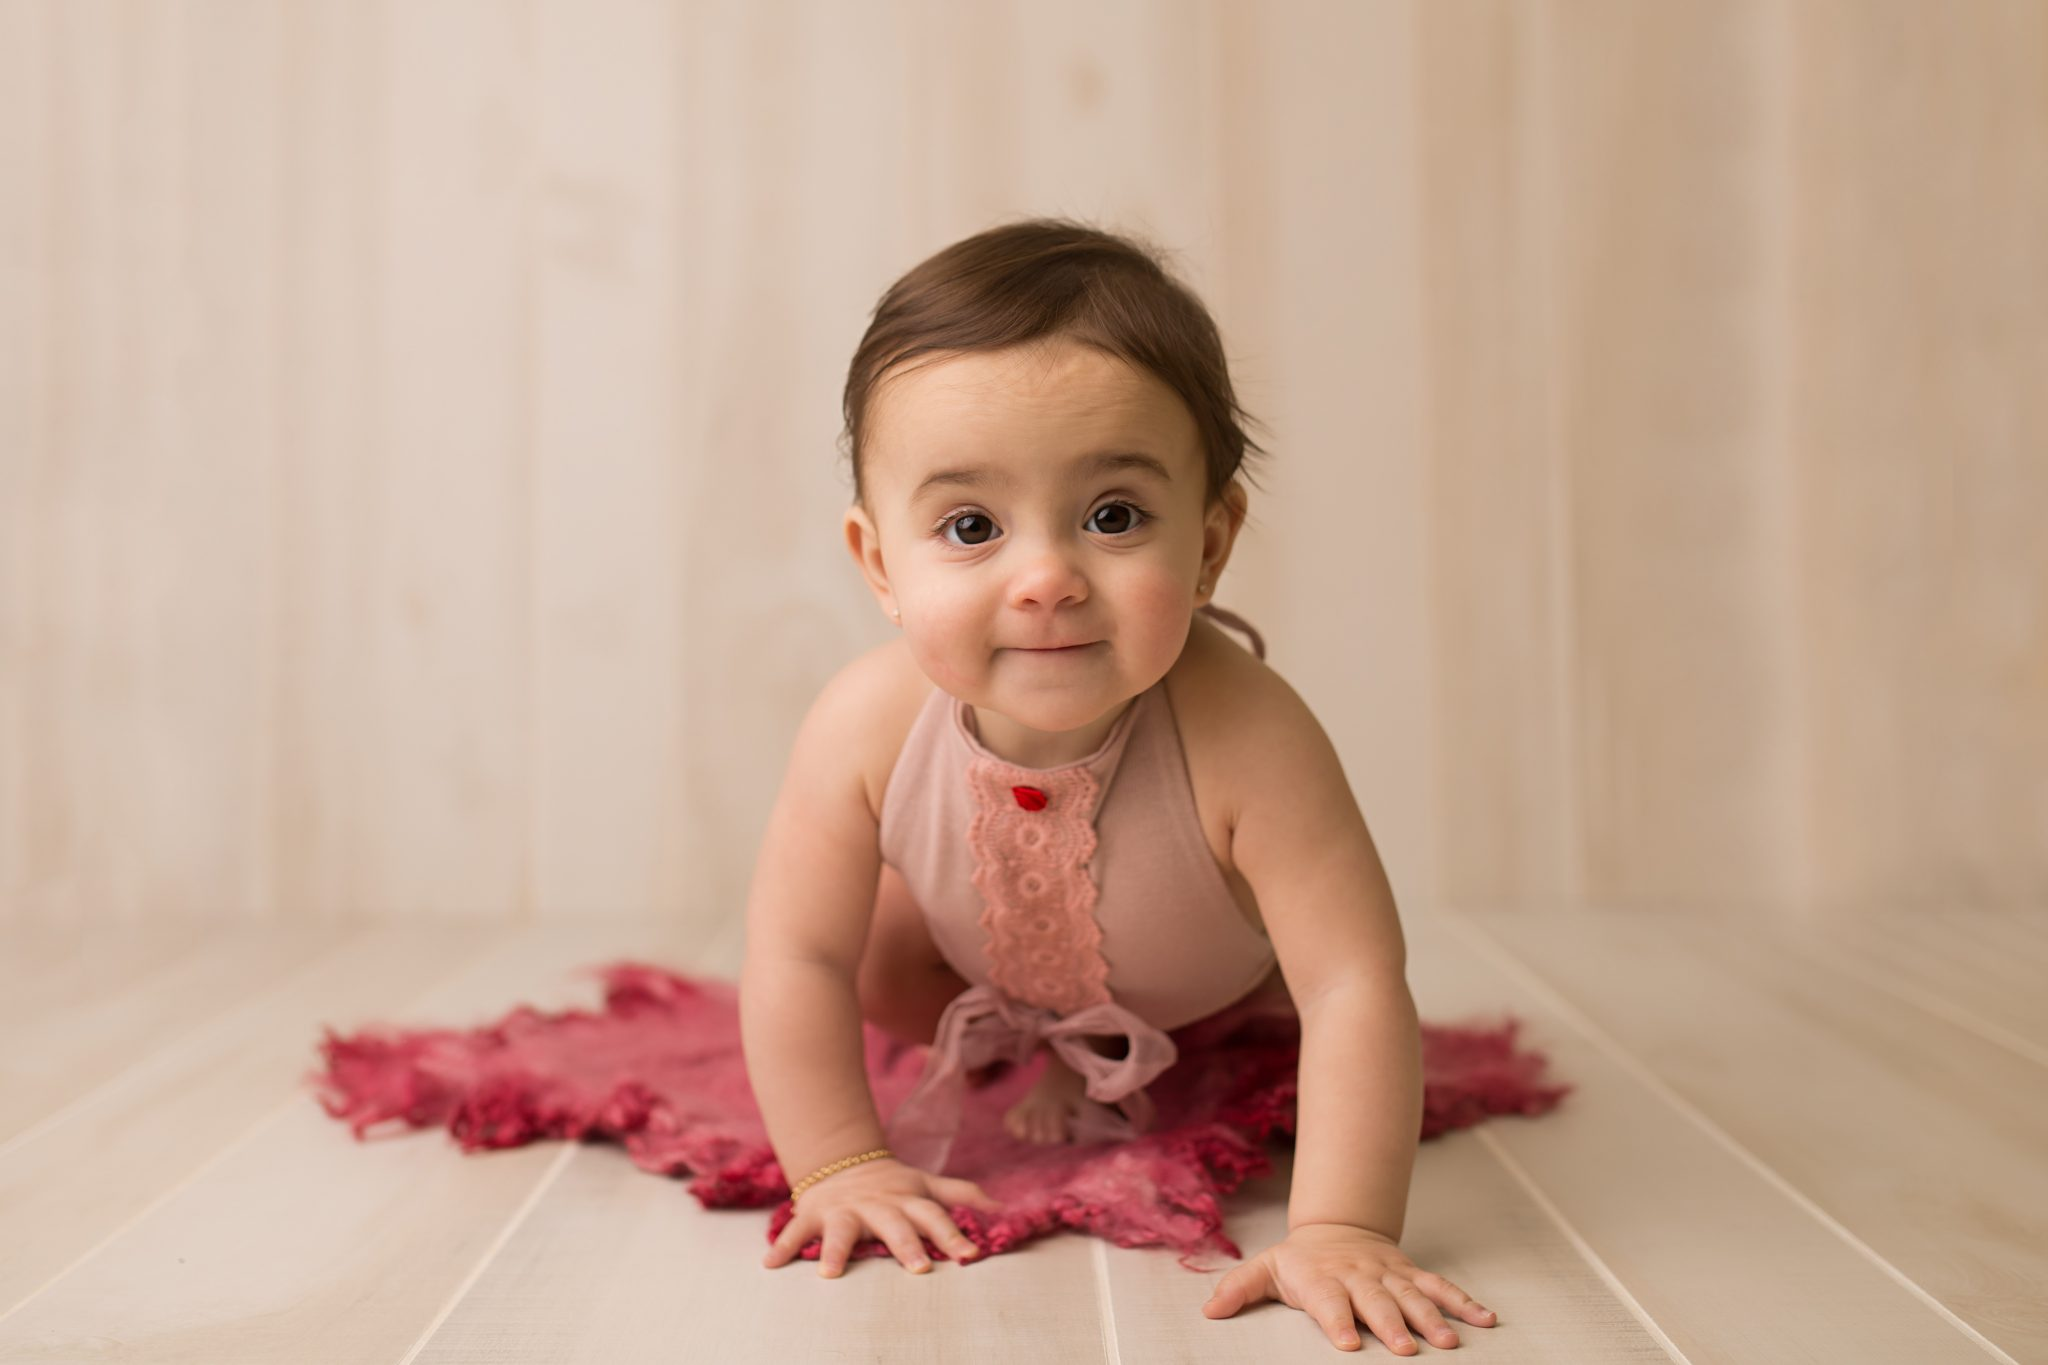 9 month old in-studio sitter session in a mauve romper